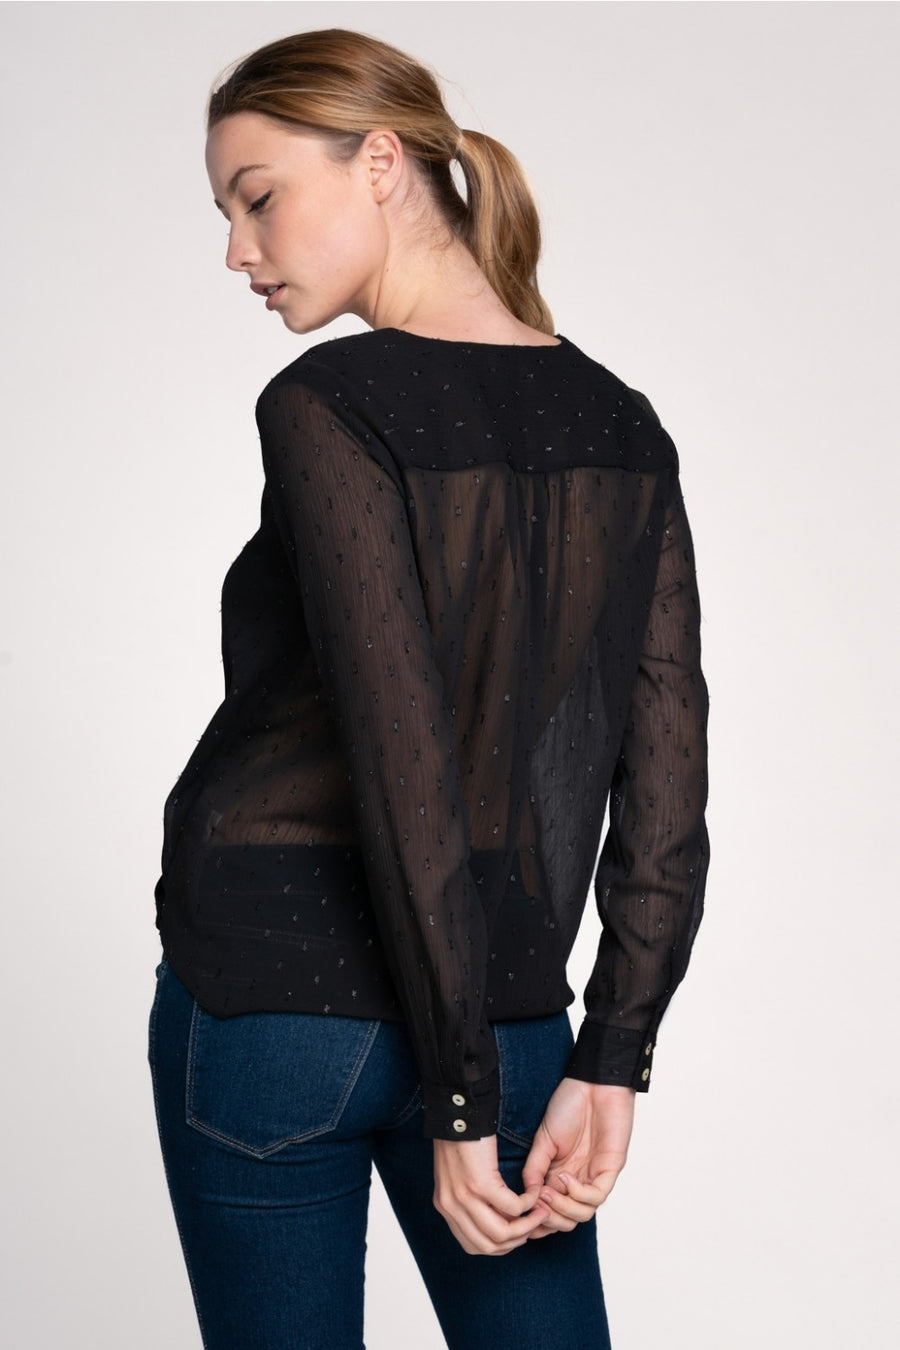 The Jessica Blouse - Beau&Arrow